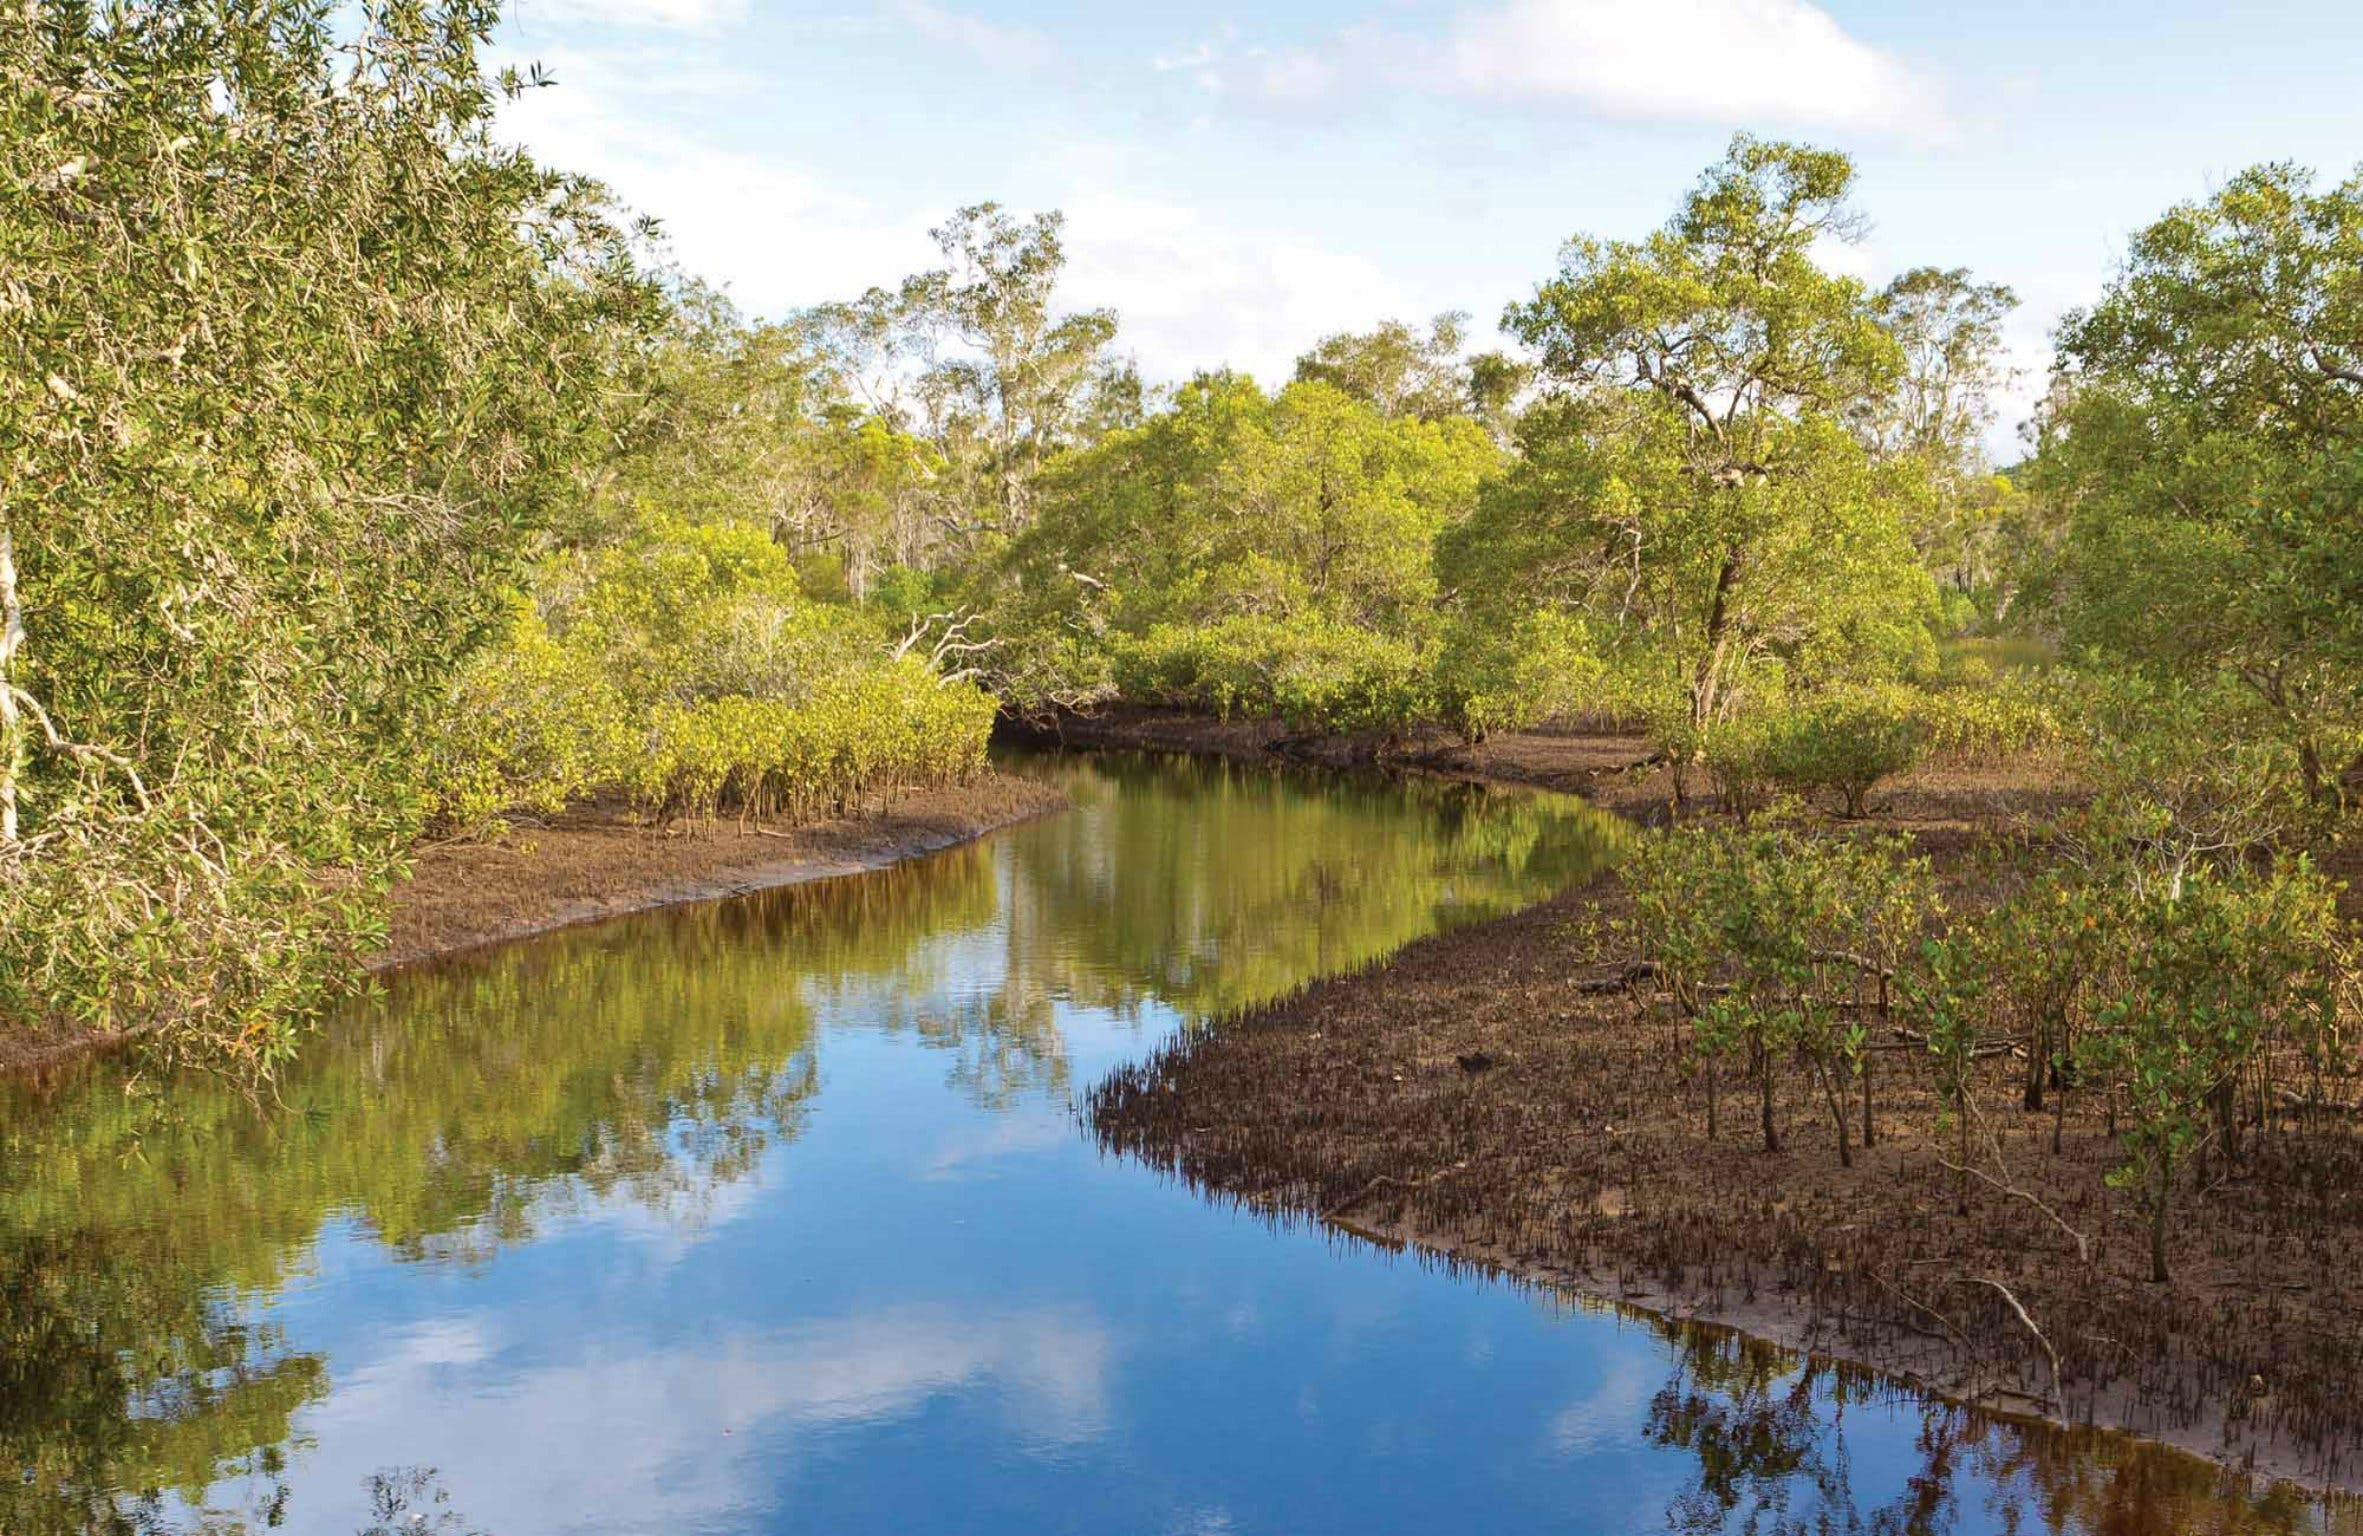 Canoe Evans River Paddle Route - Accommodation Cairns